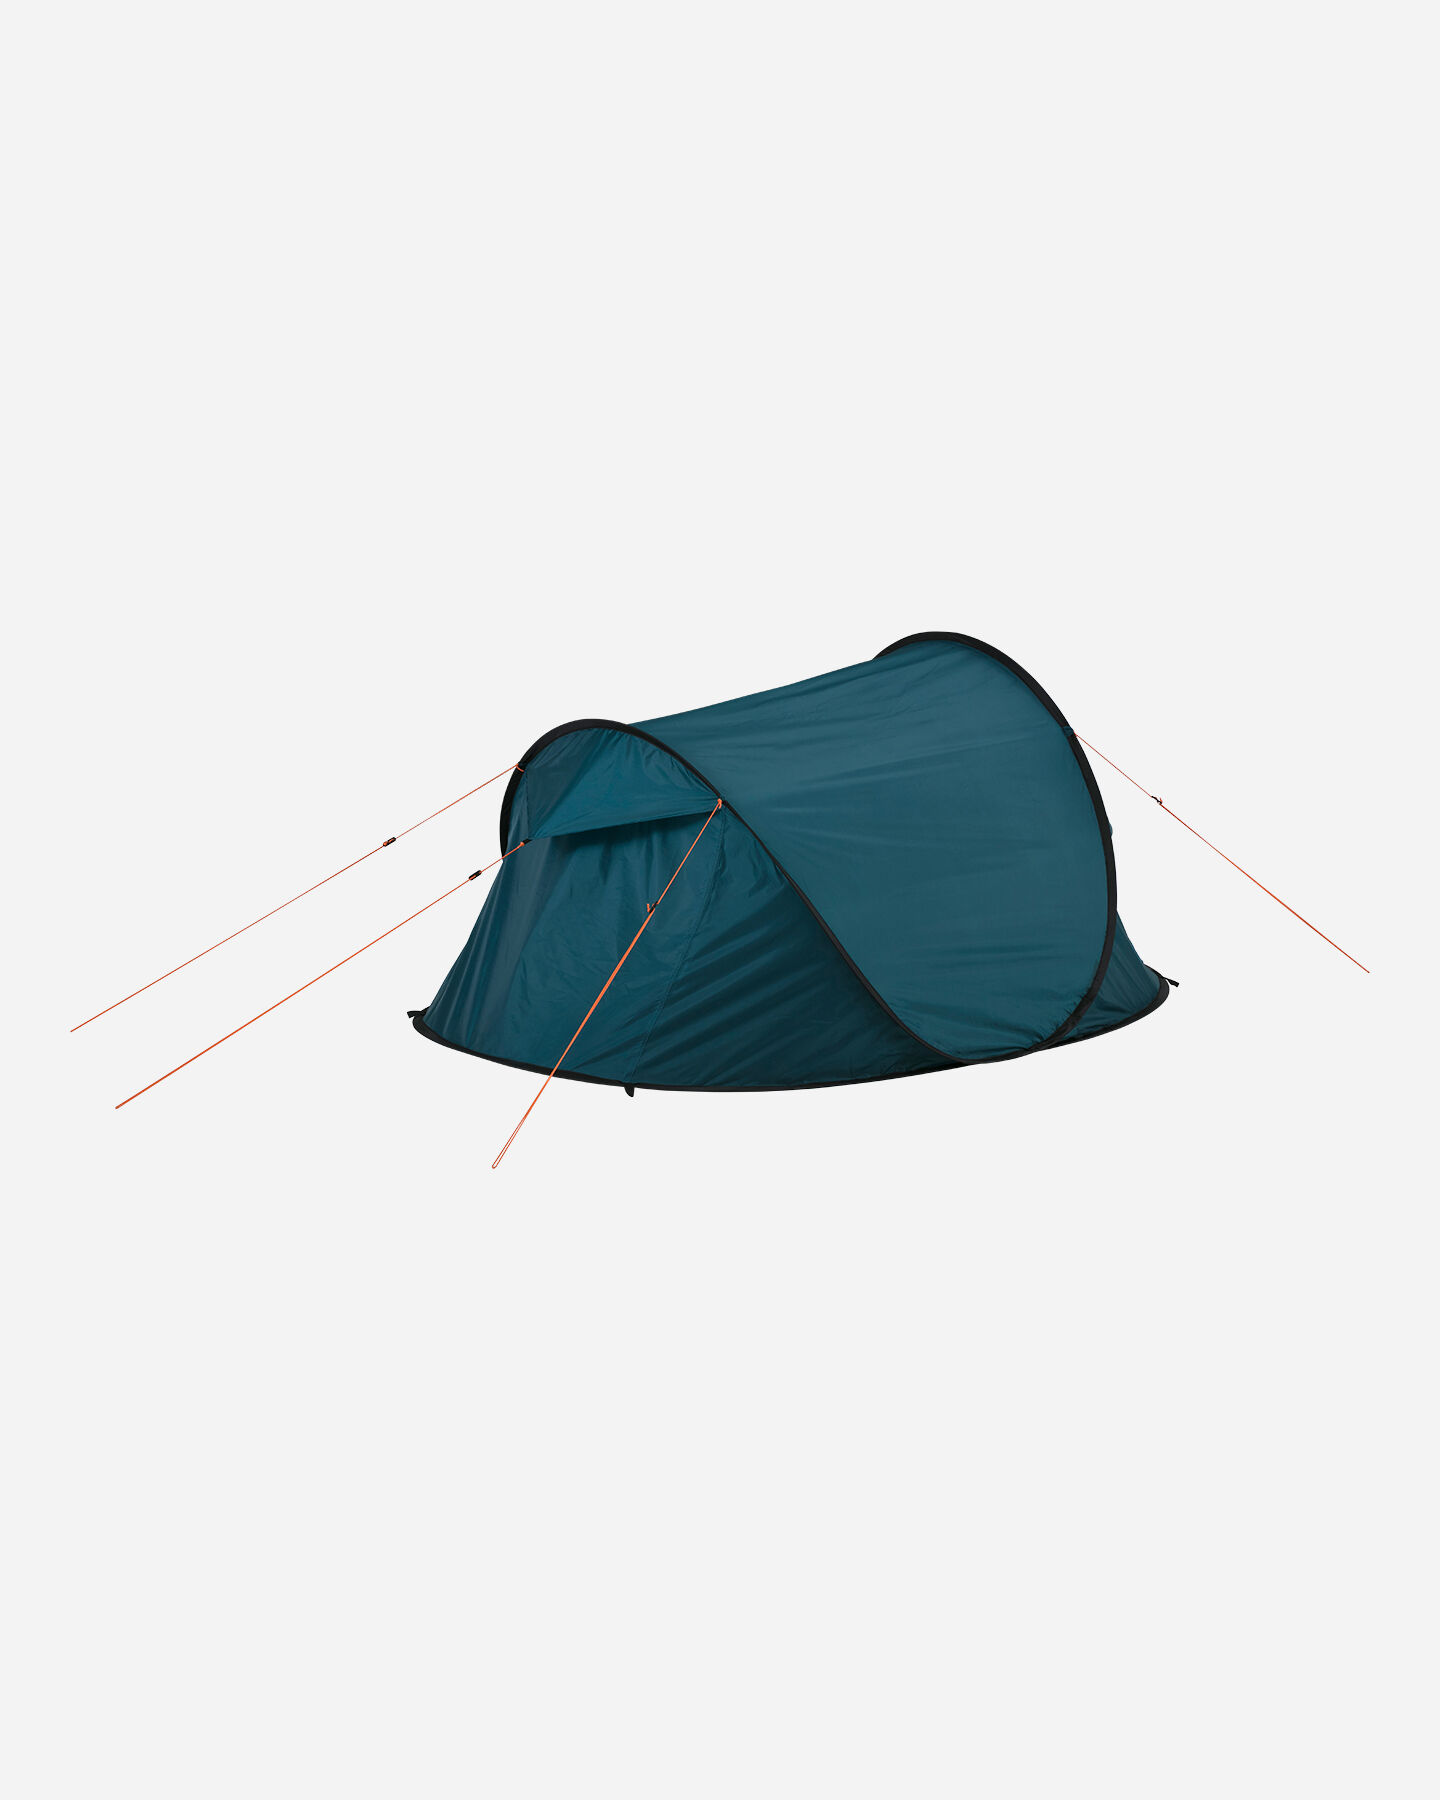 Tenda MCKINLEY IMOLA 220 S2000307|903|- scatto 1